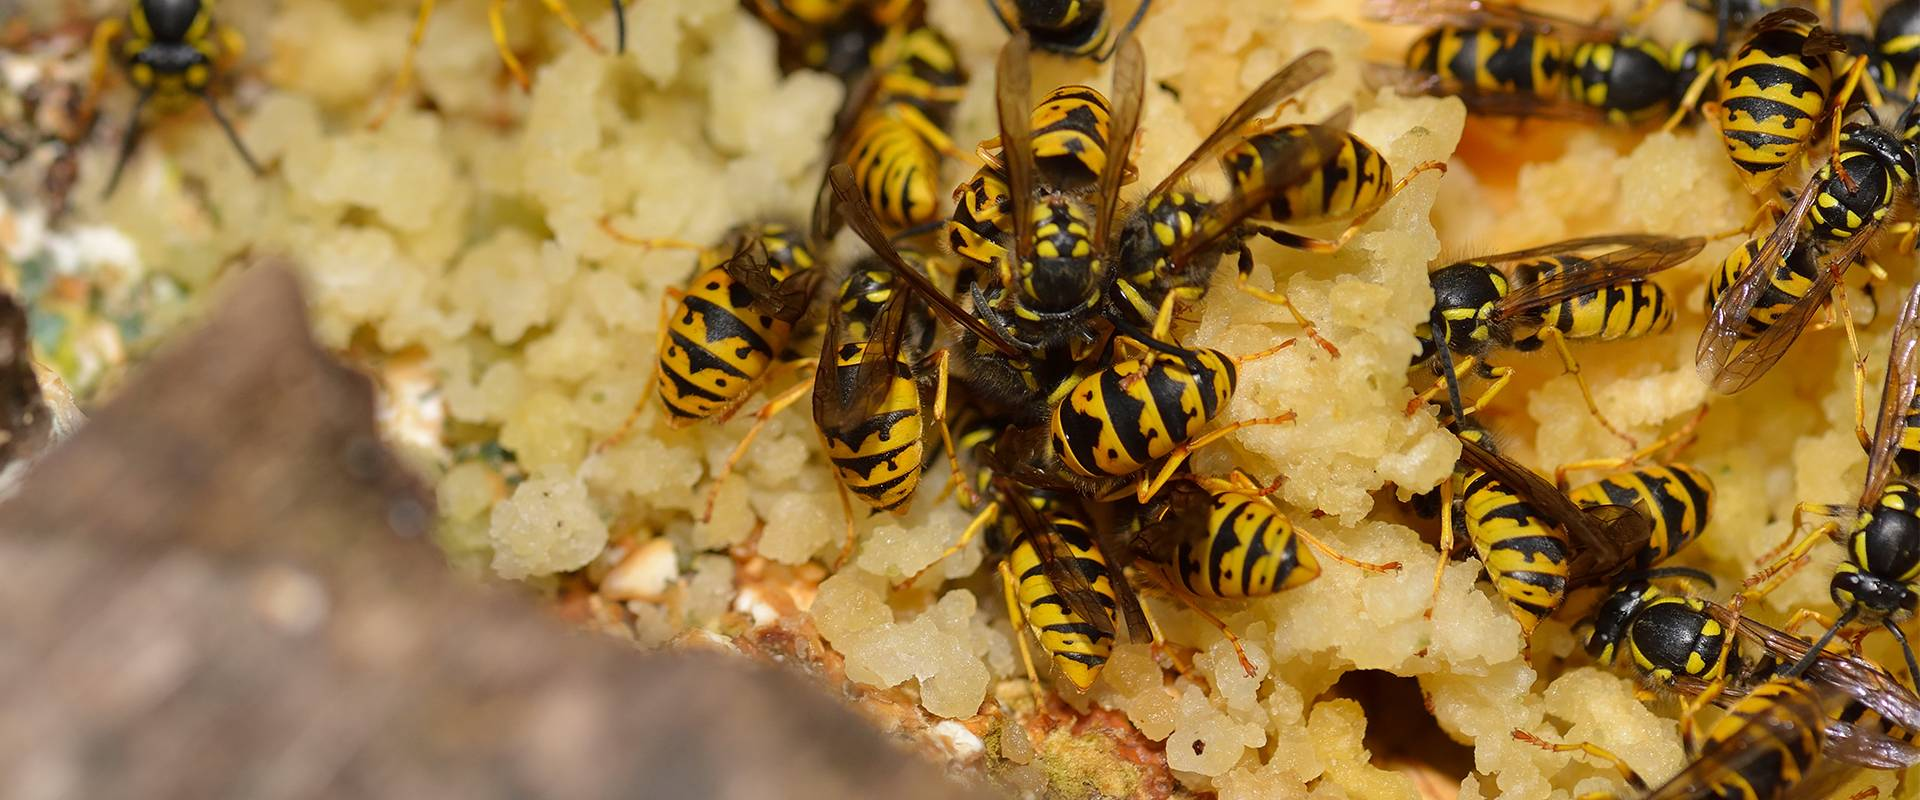 stinging insects eating food at a picnic